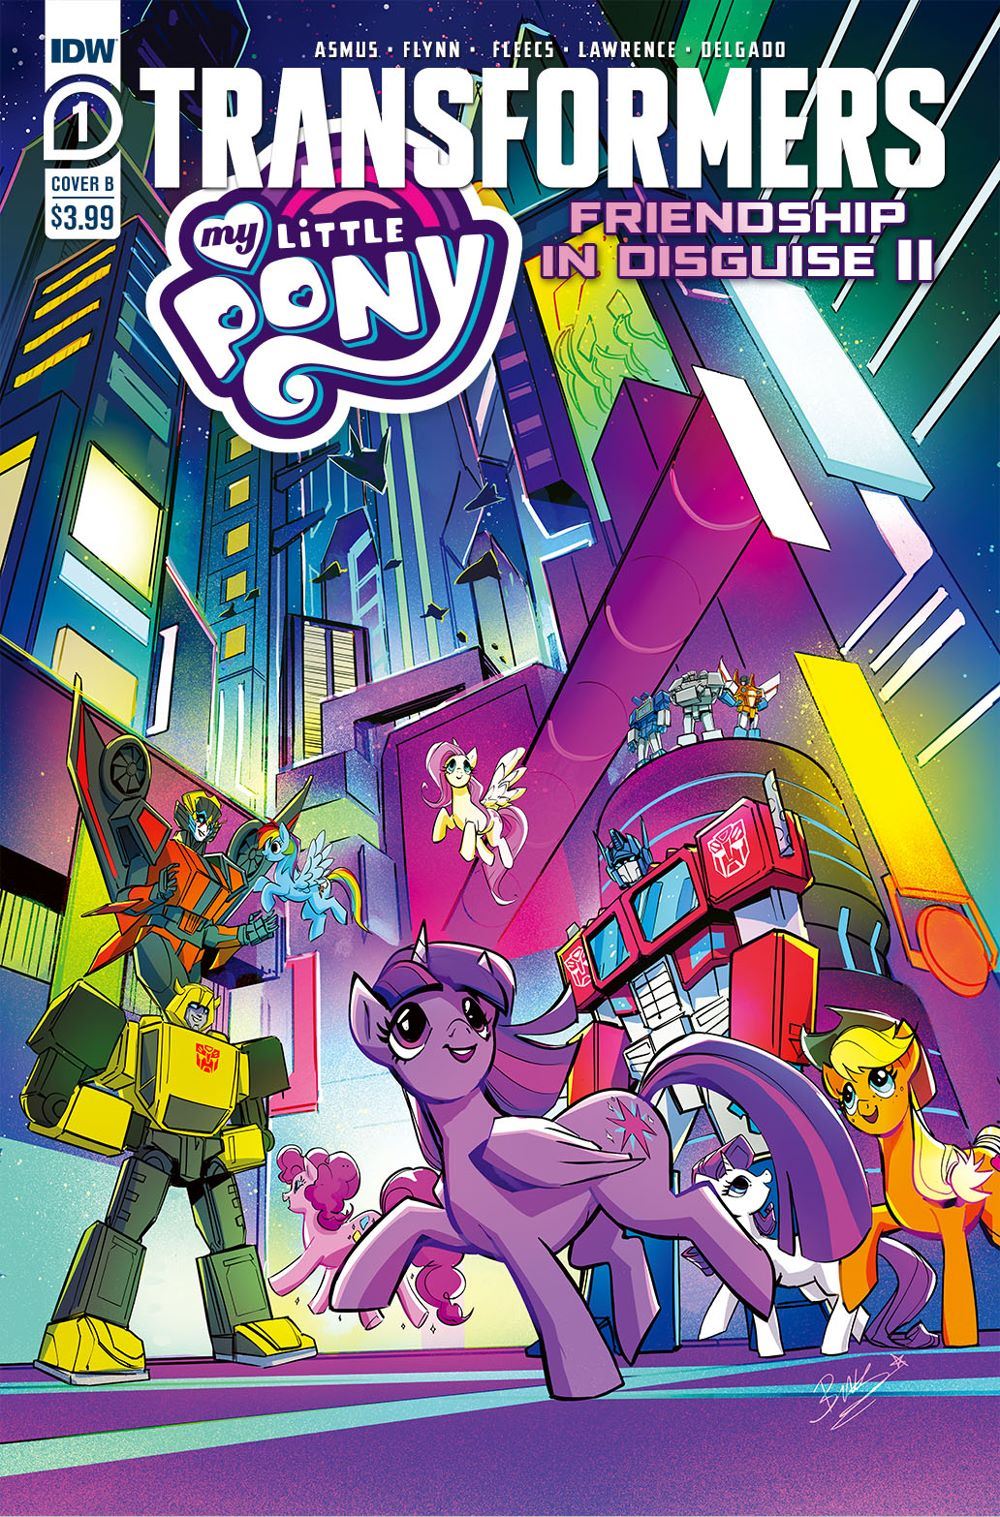 MLP_TF01-coverB-copy IDW Publishing April 2021 Solicitations